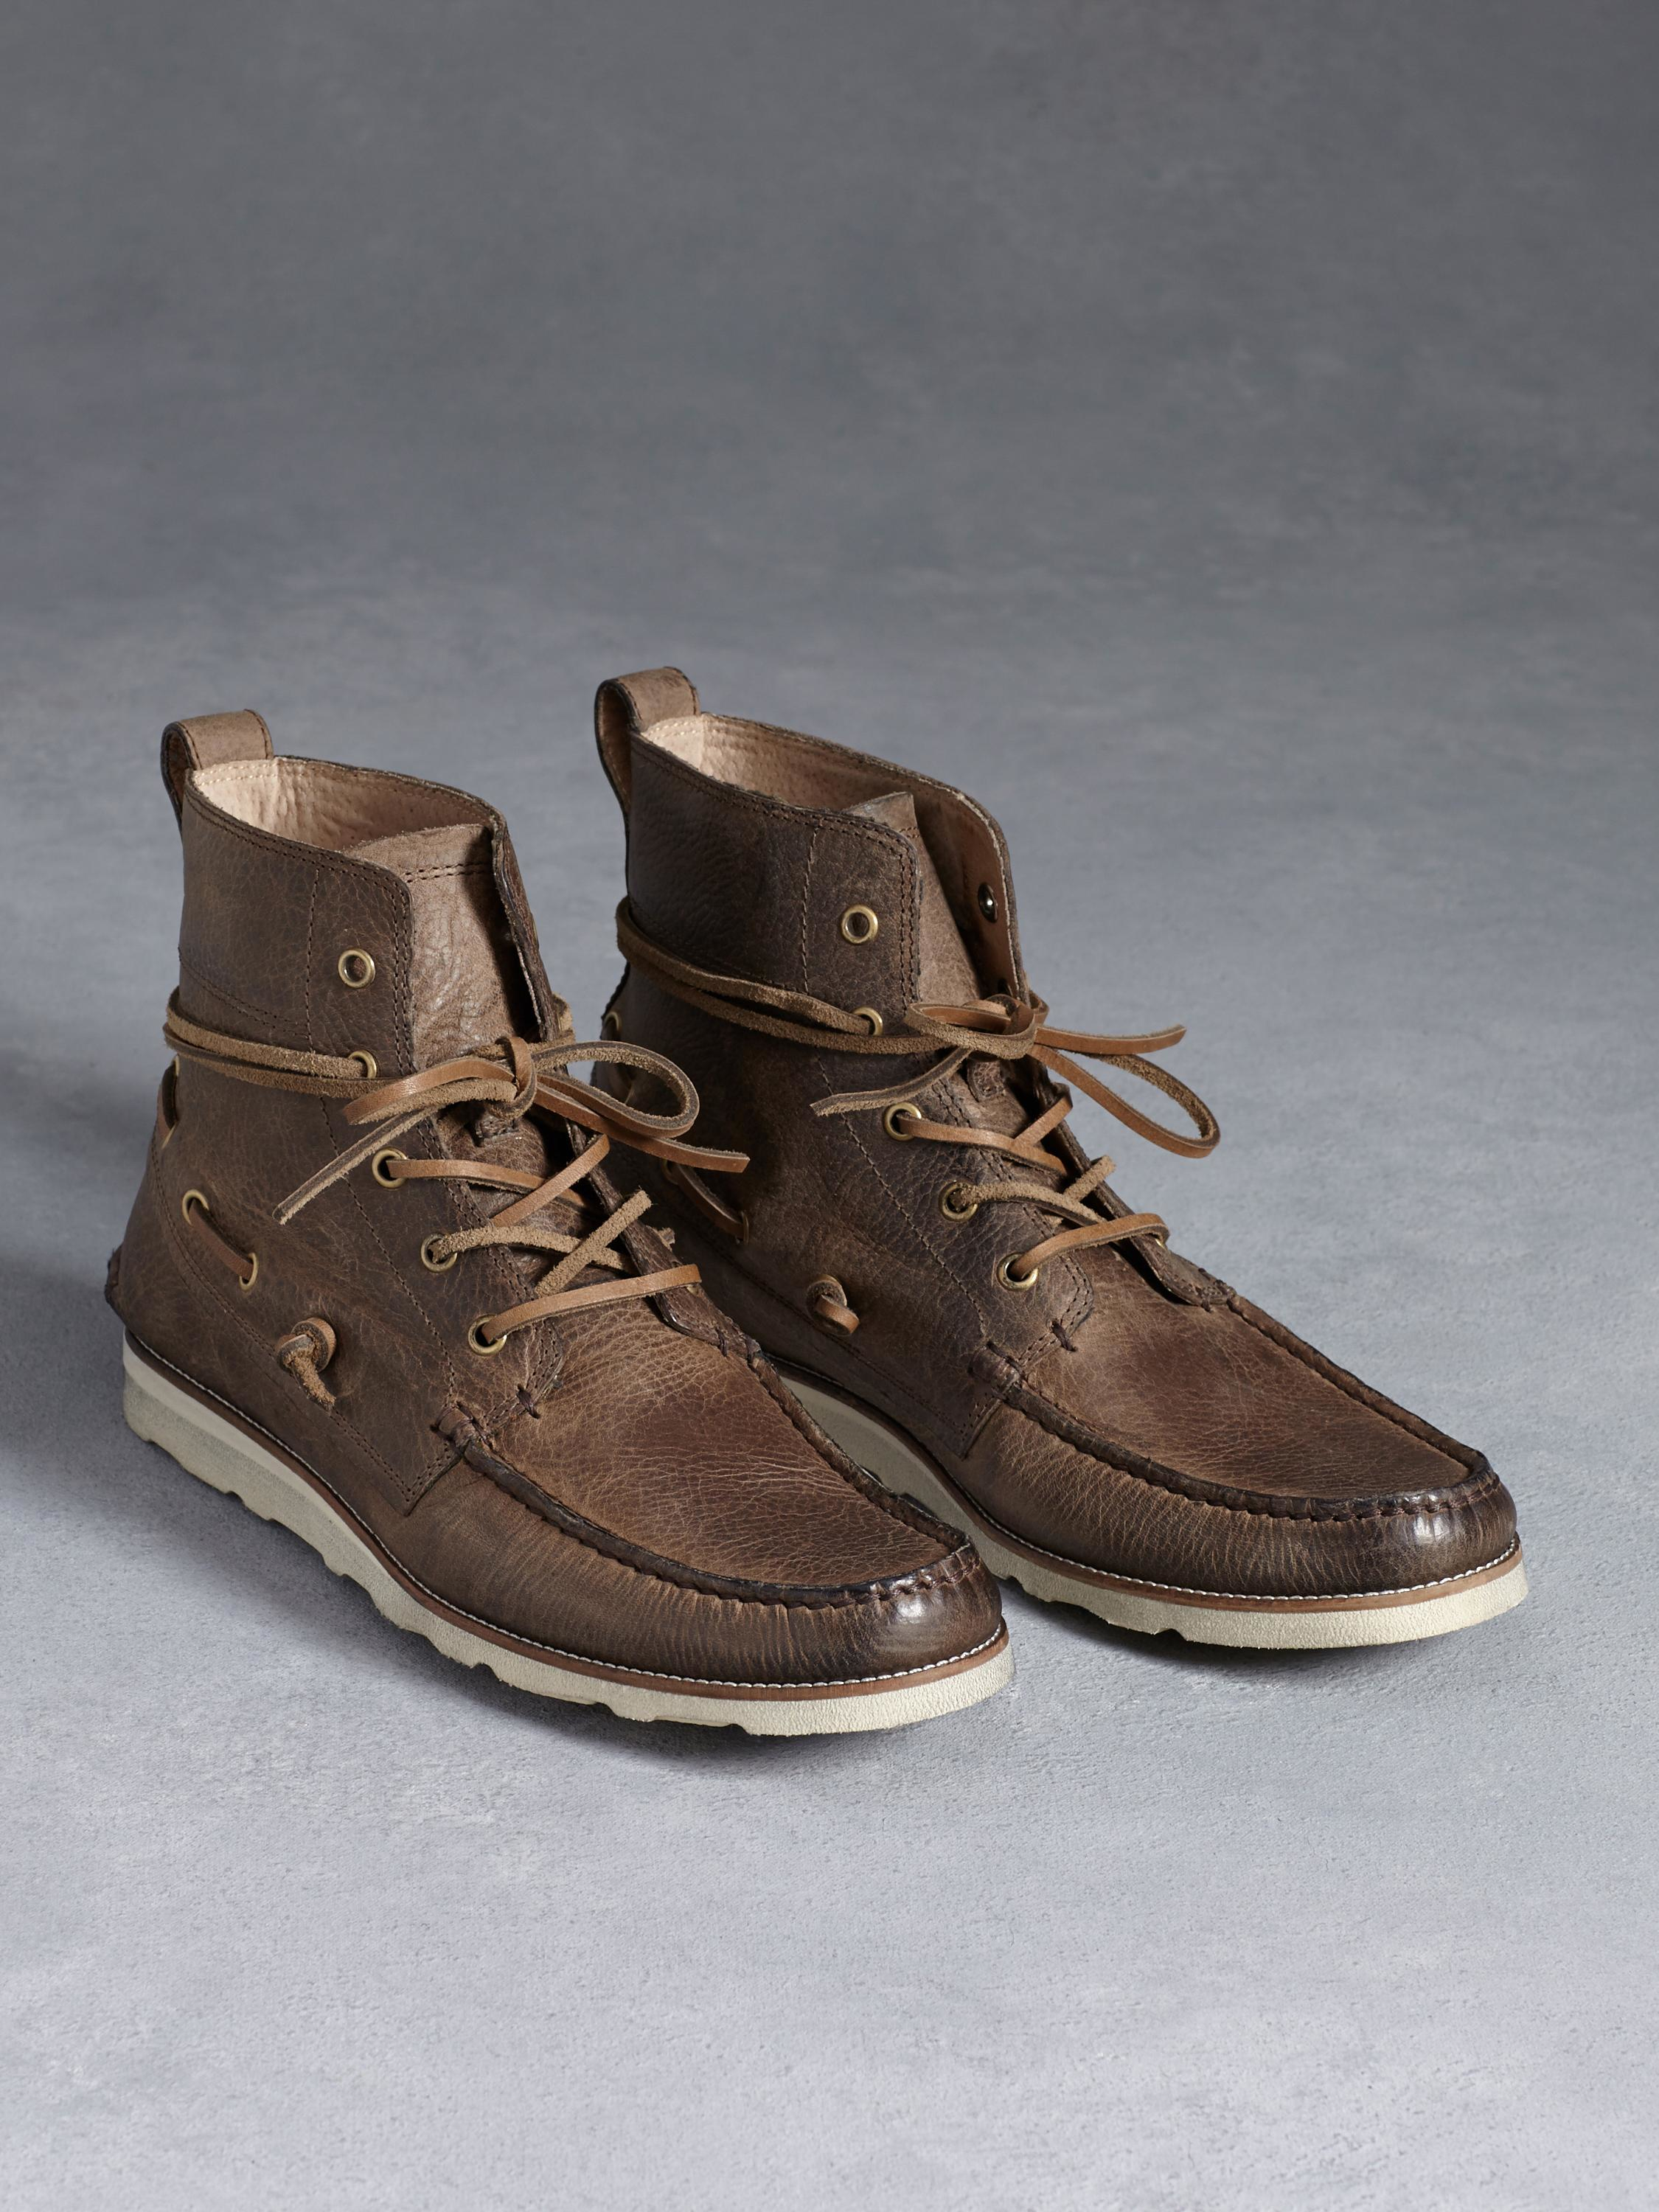 John Varvatos Lugger Boat Boot fashion shoes clearance  hot sale online